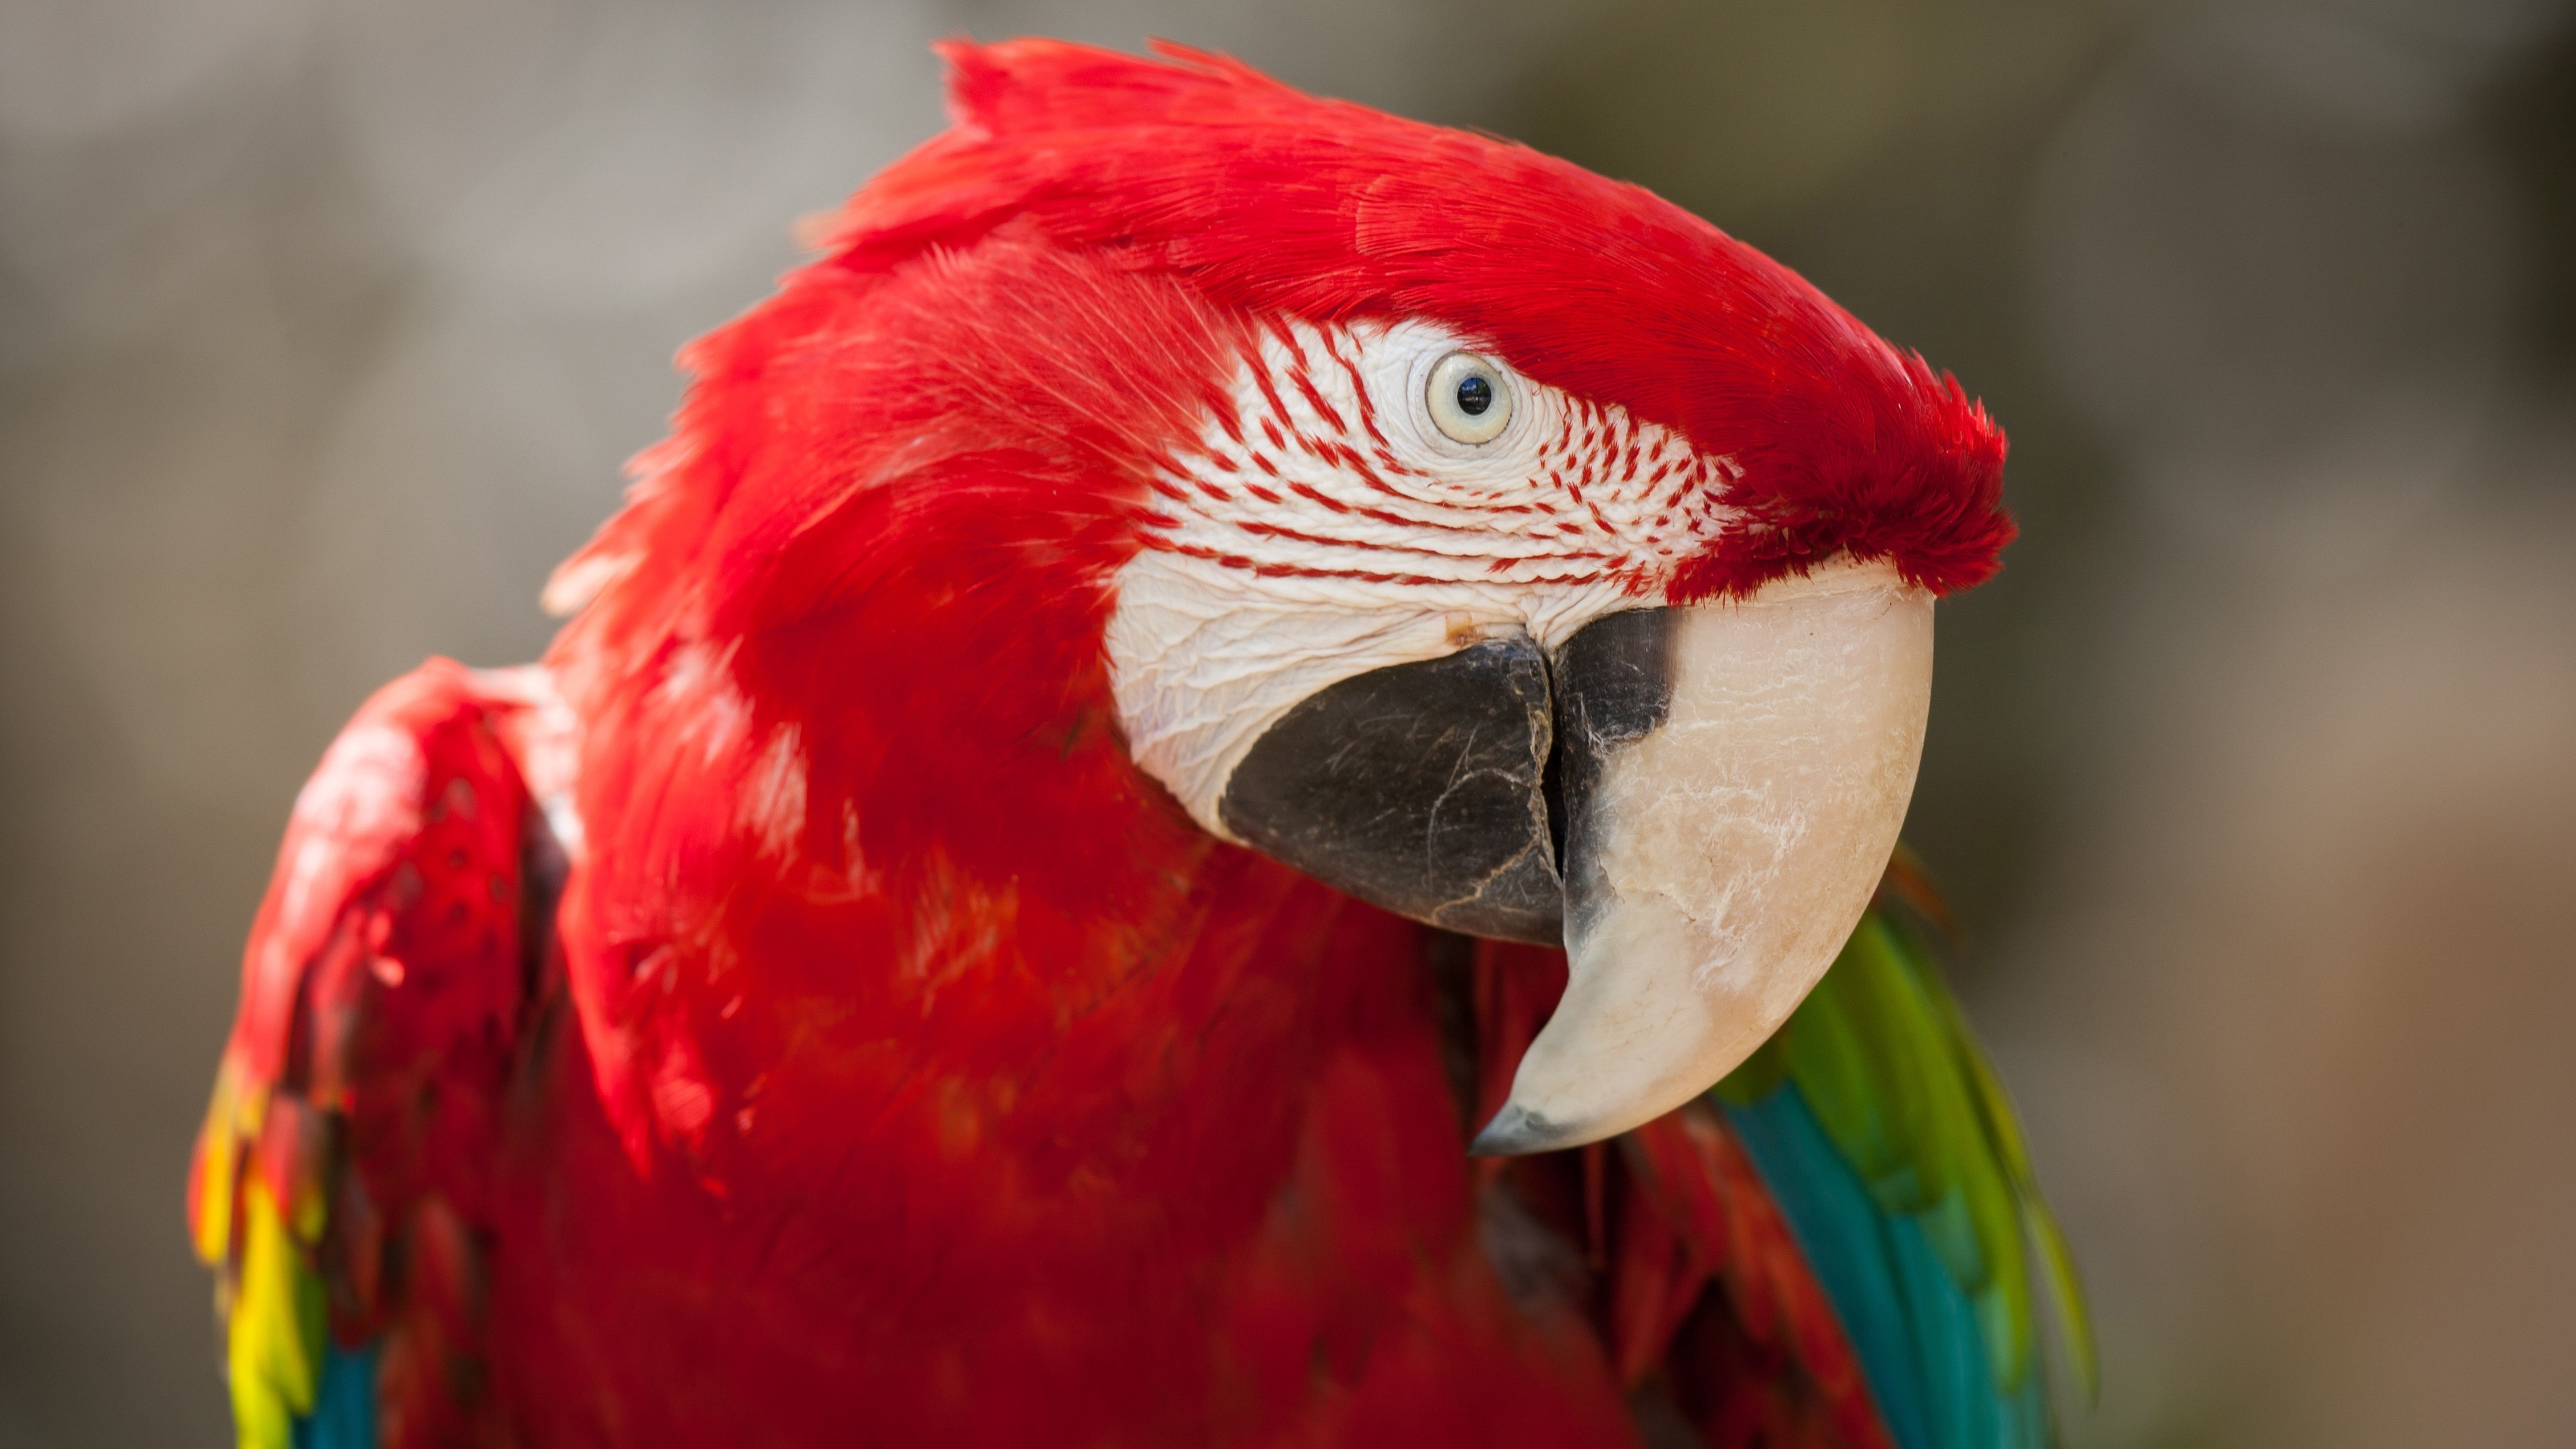 Wallpaper Macaw Parrot Tropical Bird Red Animals 12484